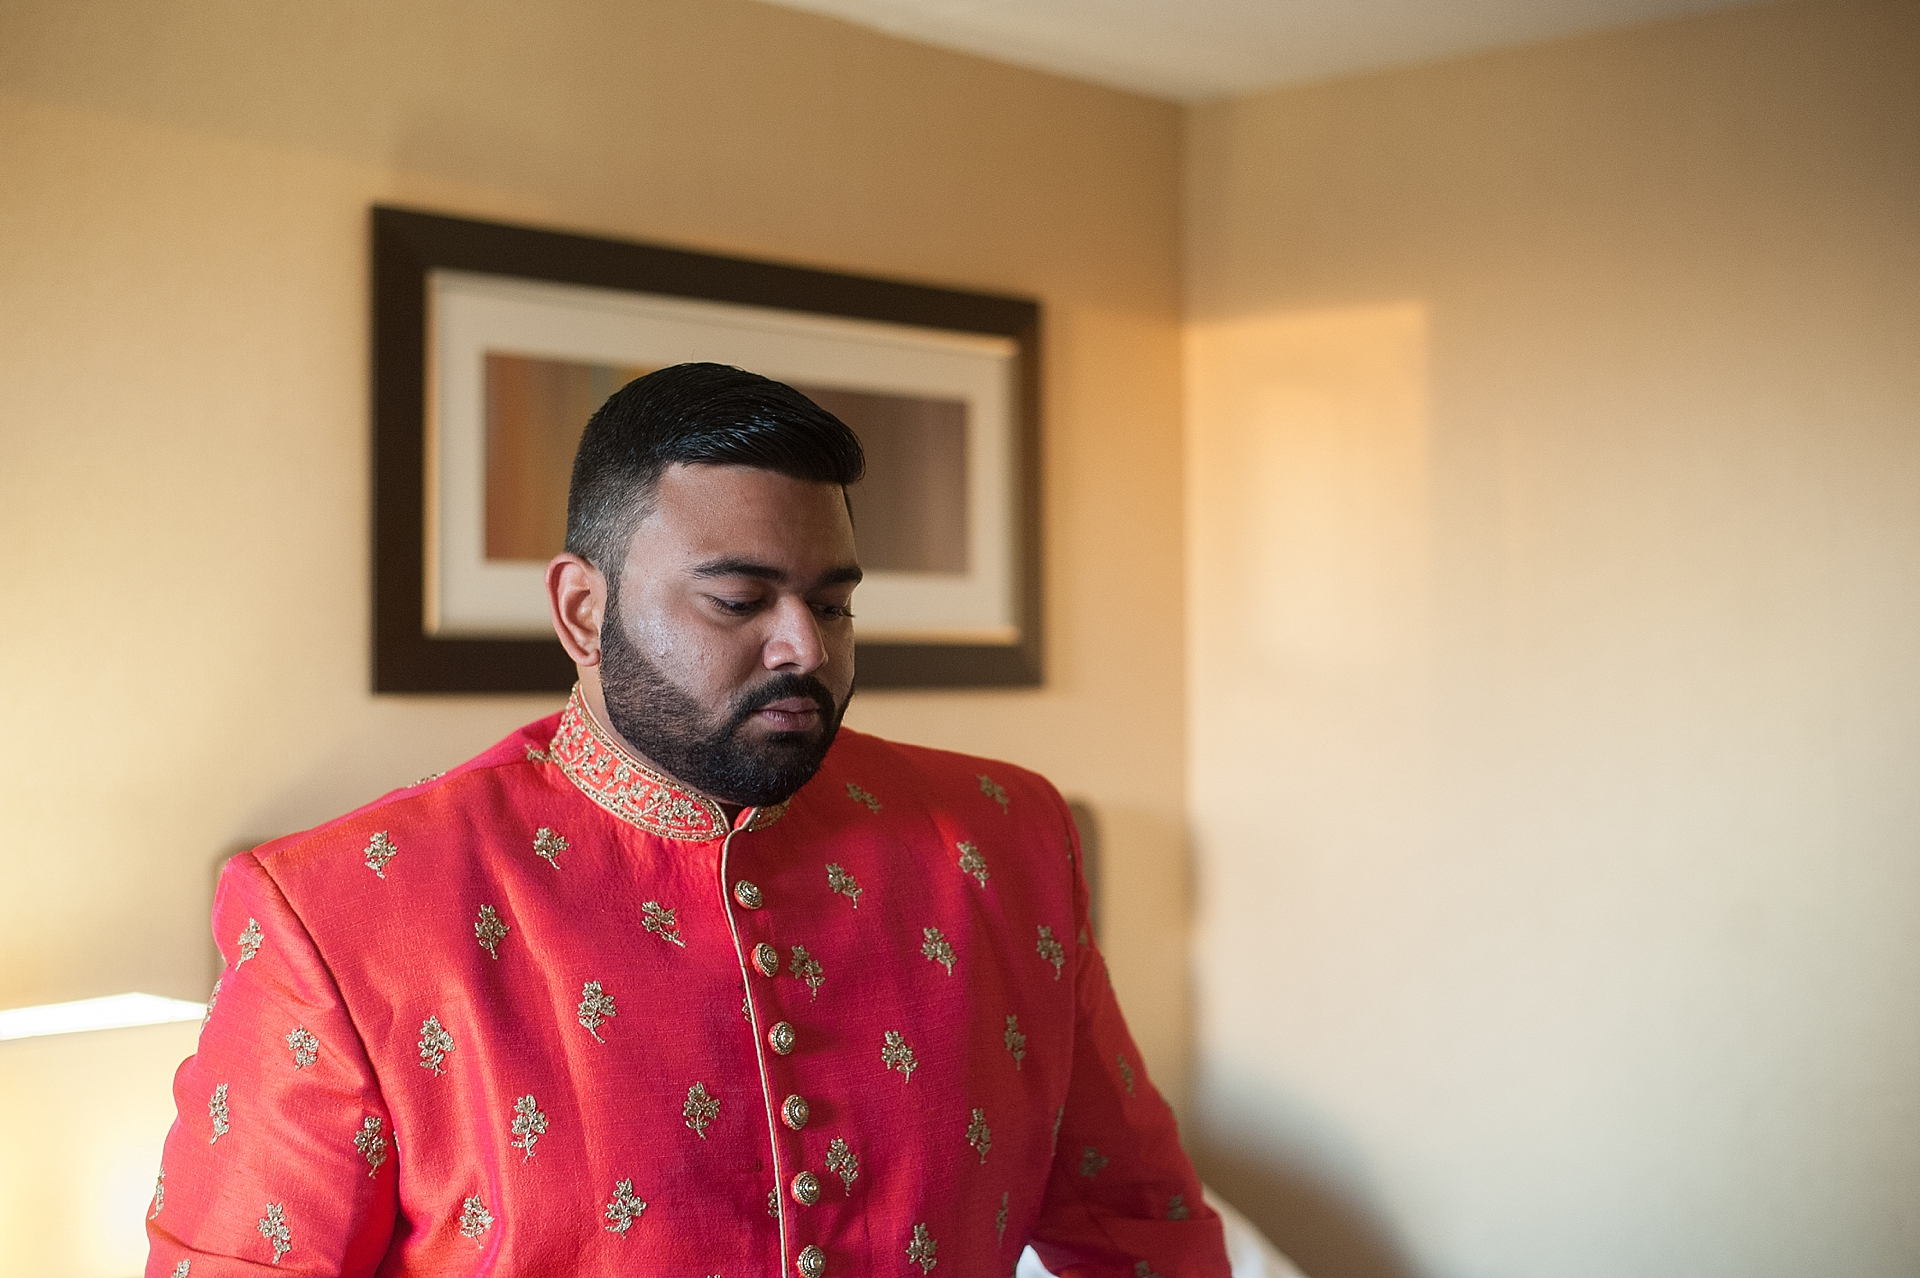 Prexa_Harry_Columbus_Crown_Plaza_Indian_Wedding0002.jpg